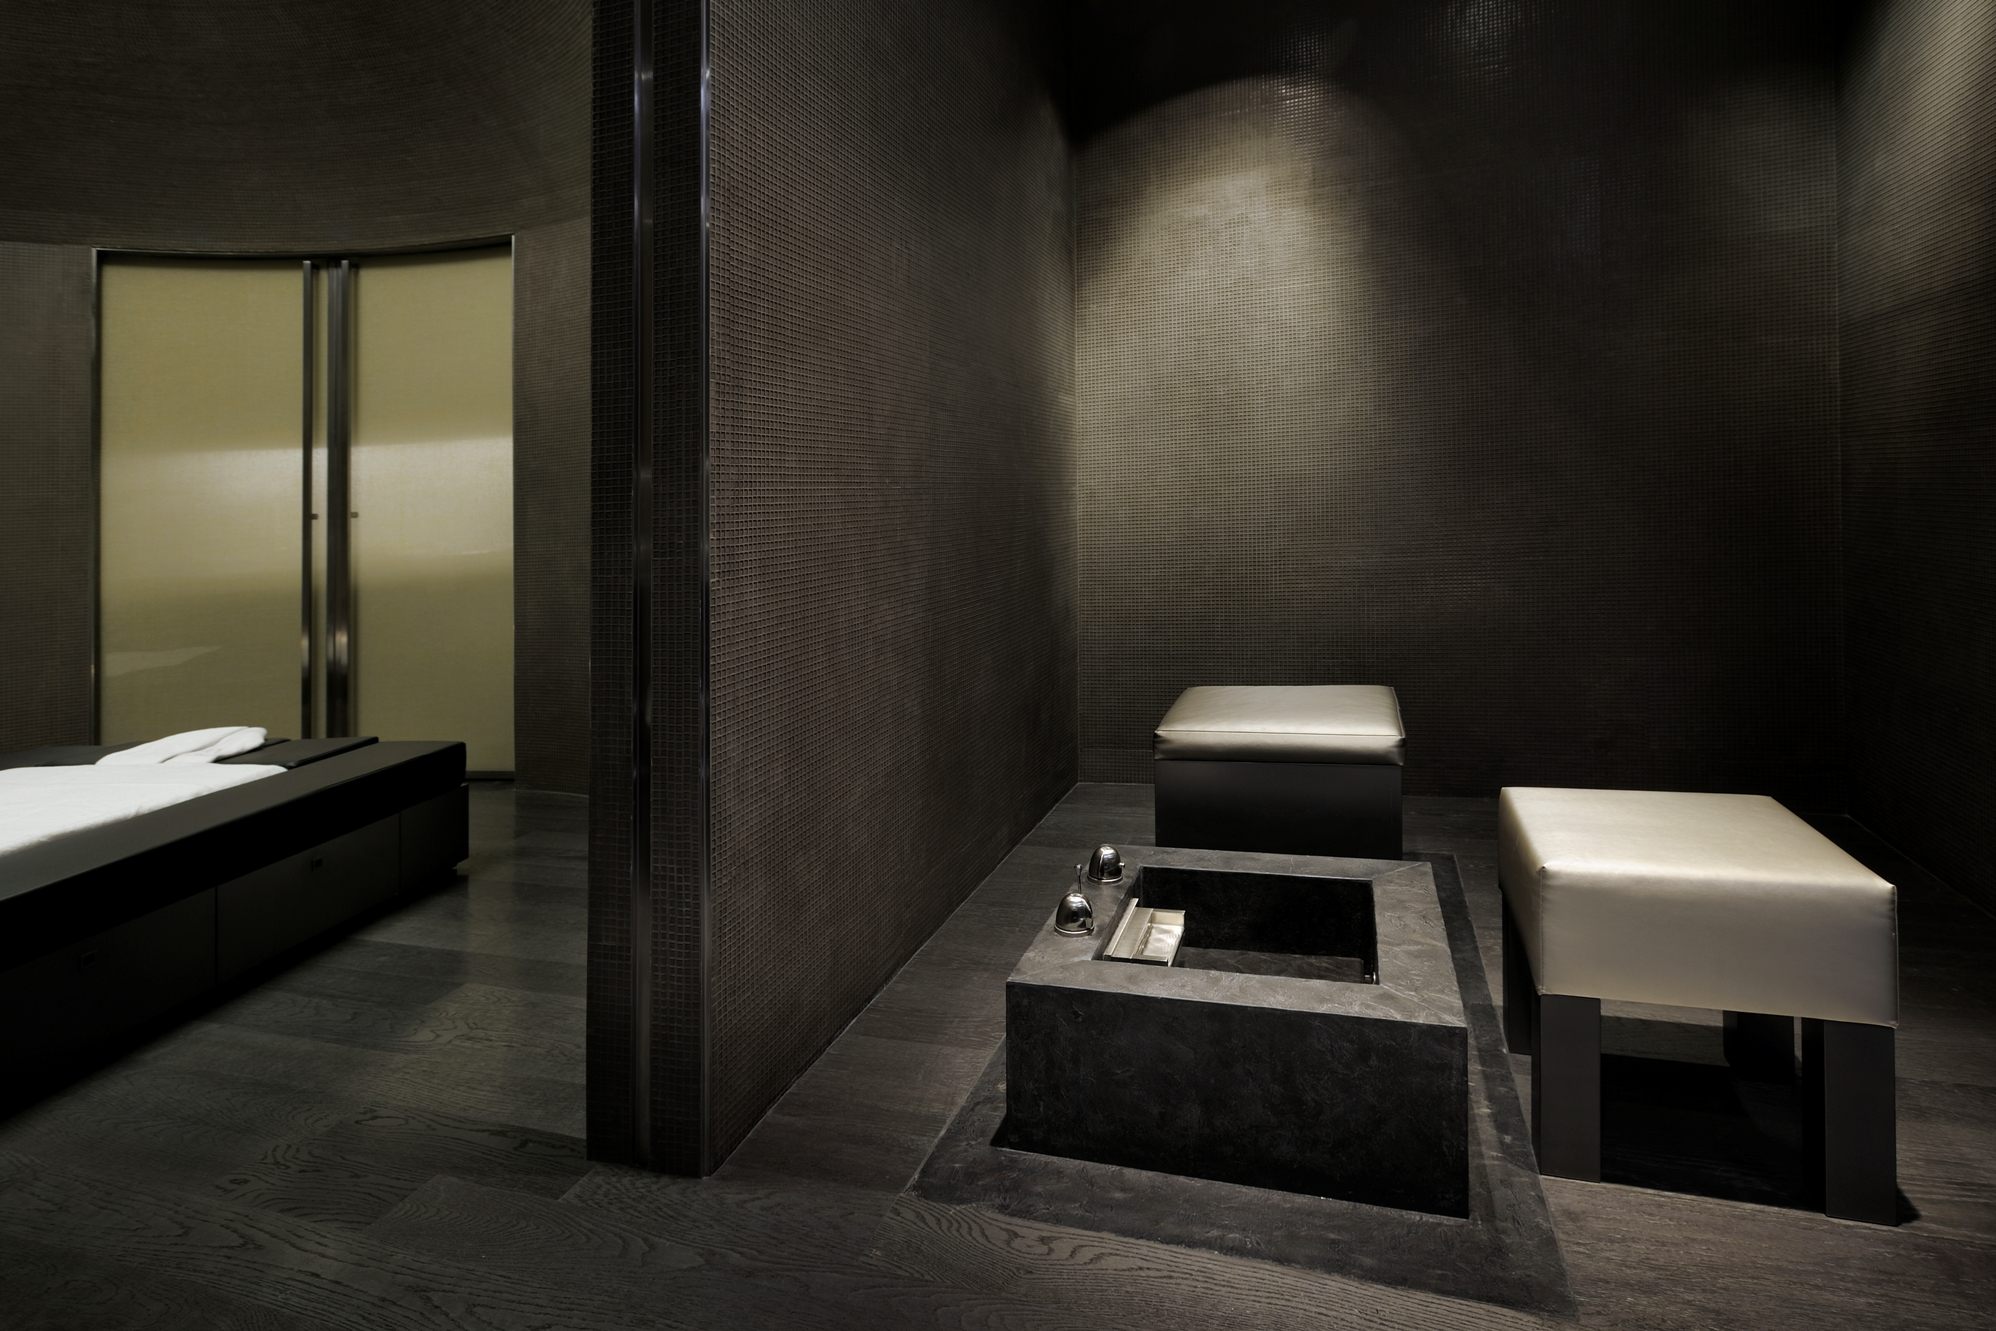 Armani Spa - Signature Suite2